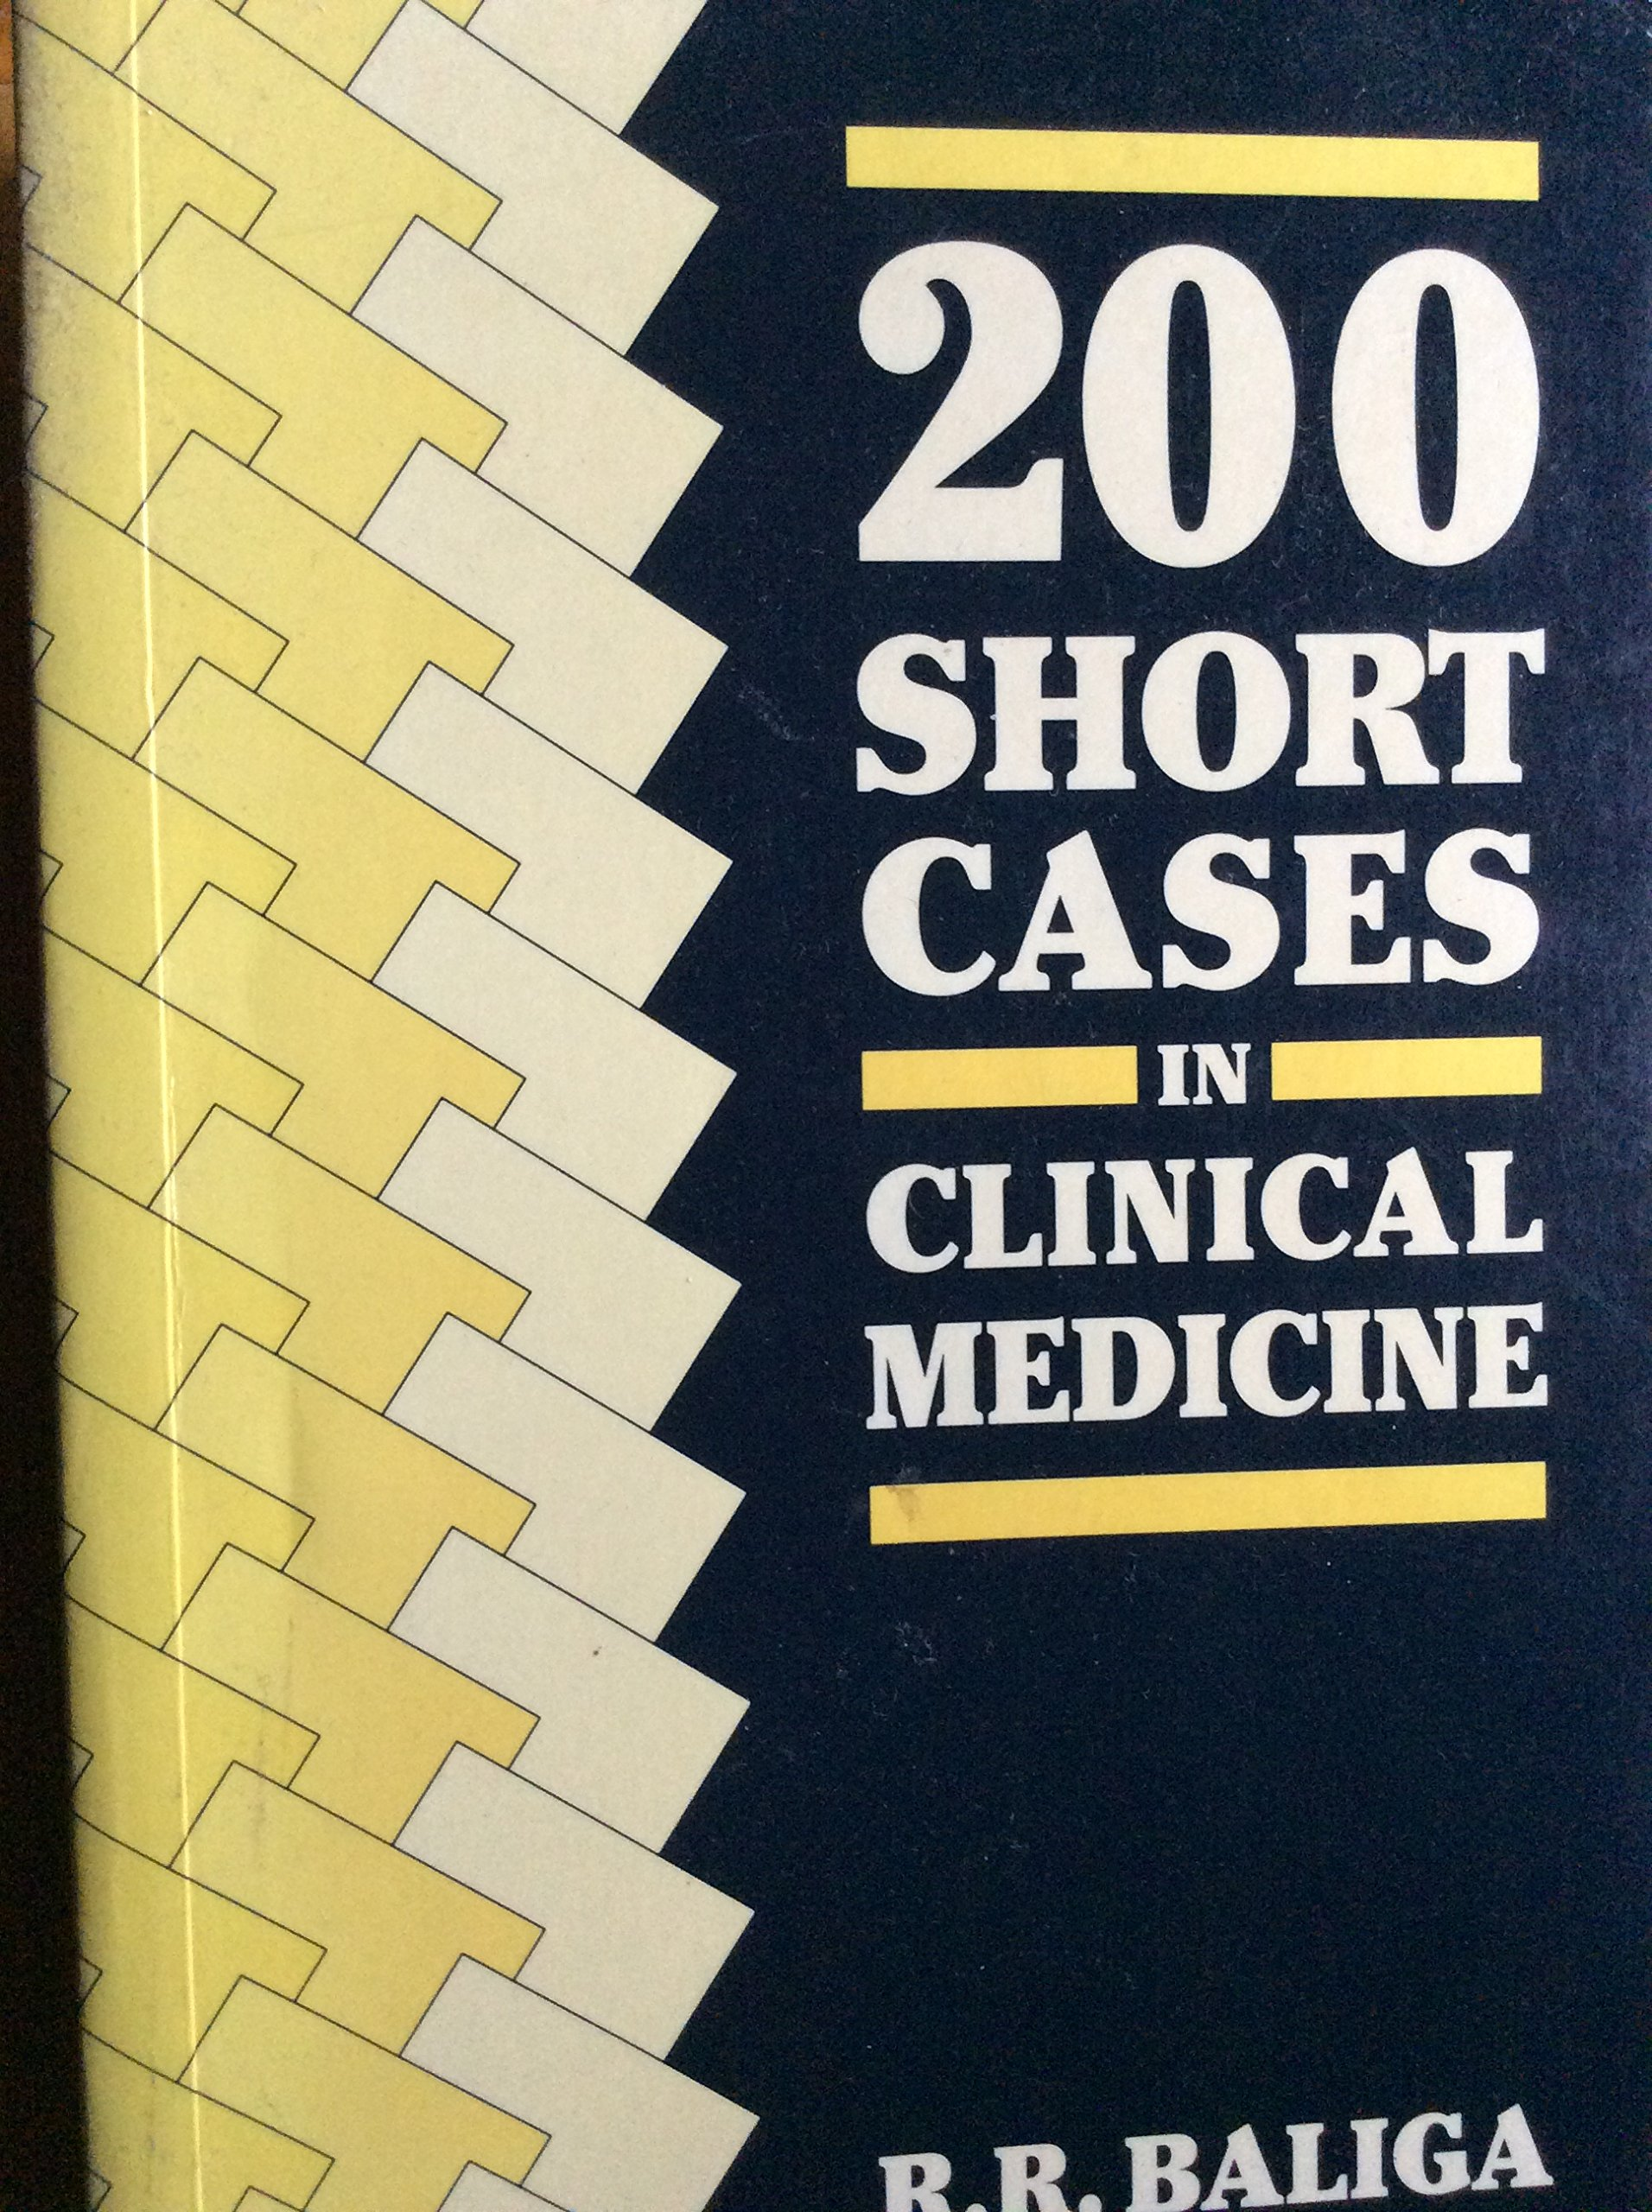 200 Short Cases in Clinical Medicine: R.R. Baliga: 9780702016844:  Amazon.com: Books